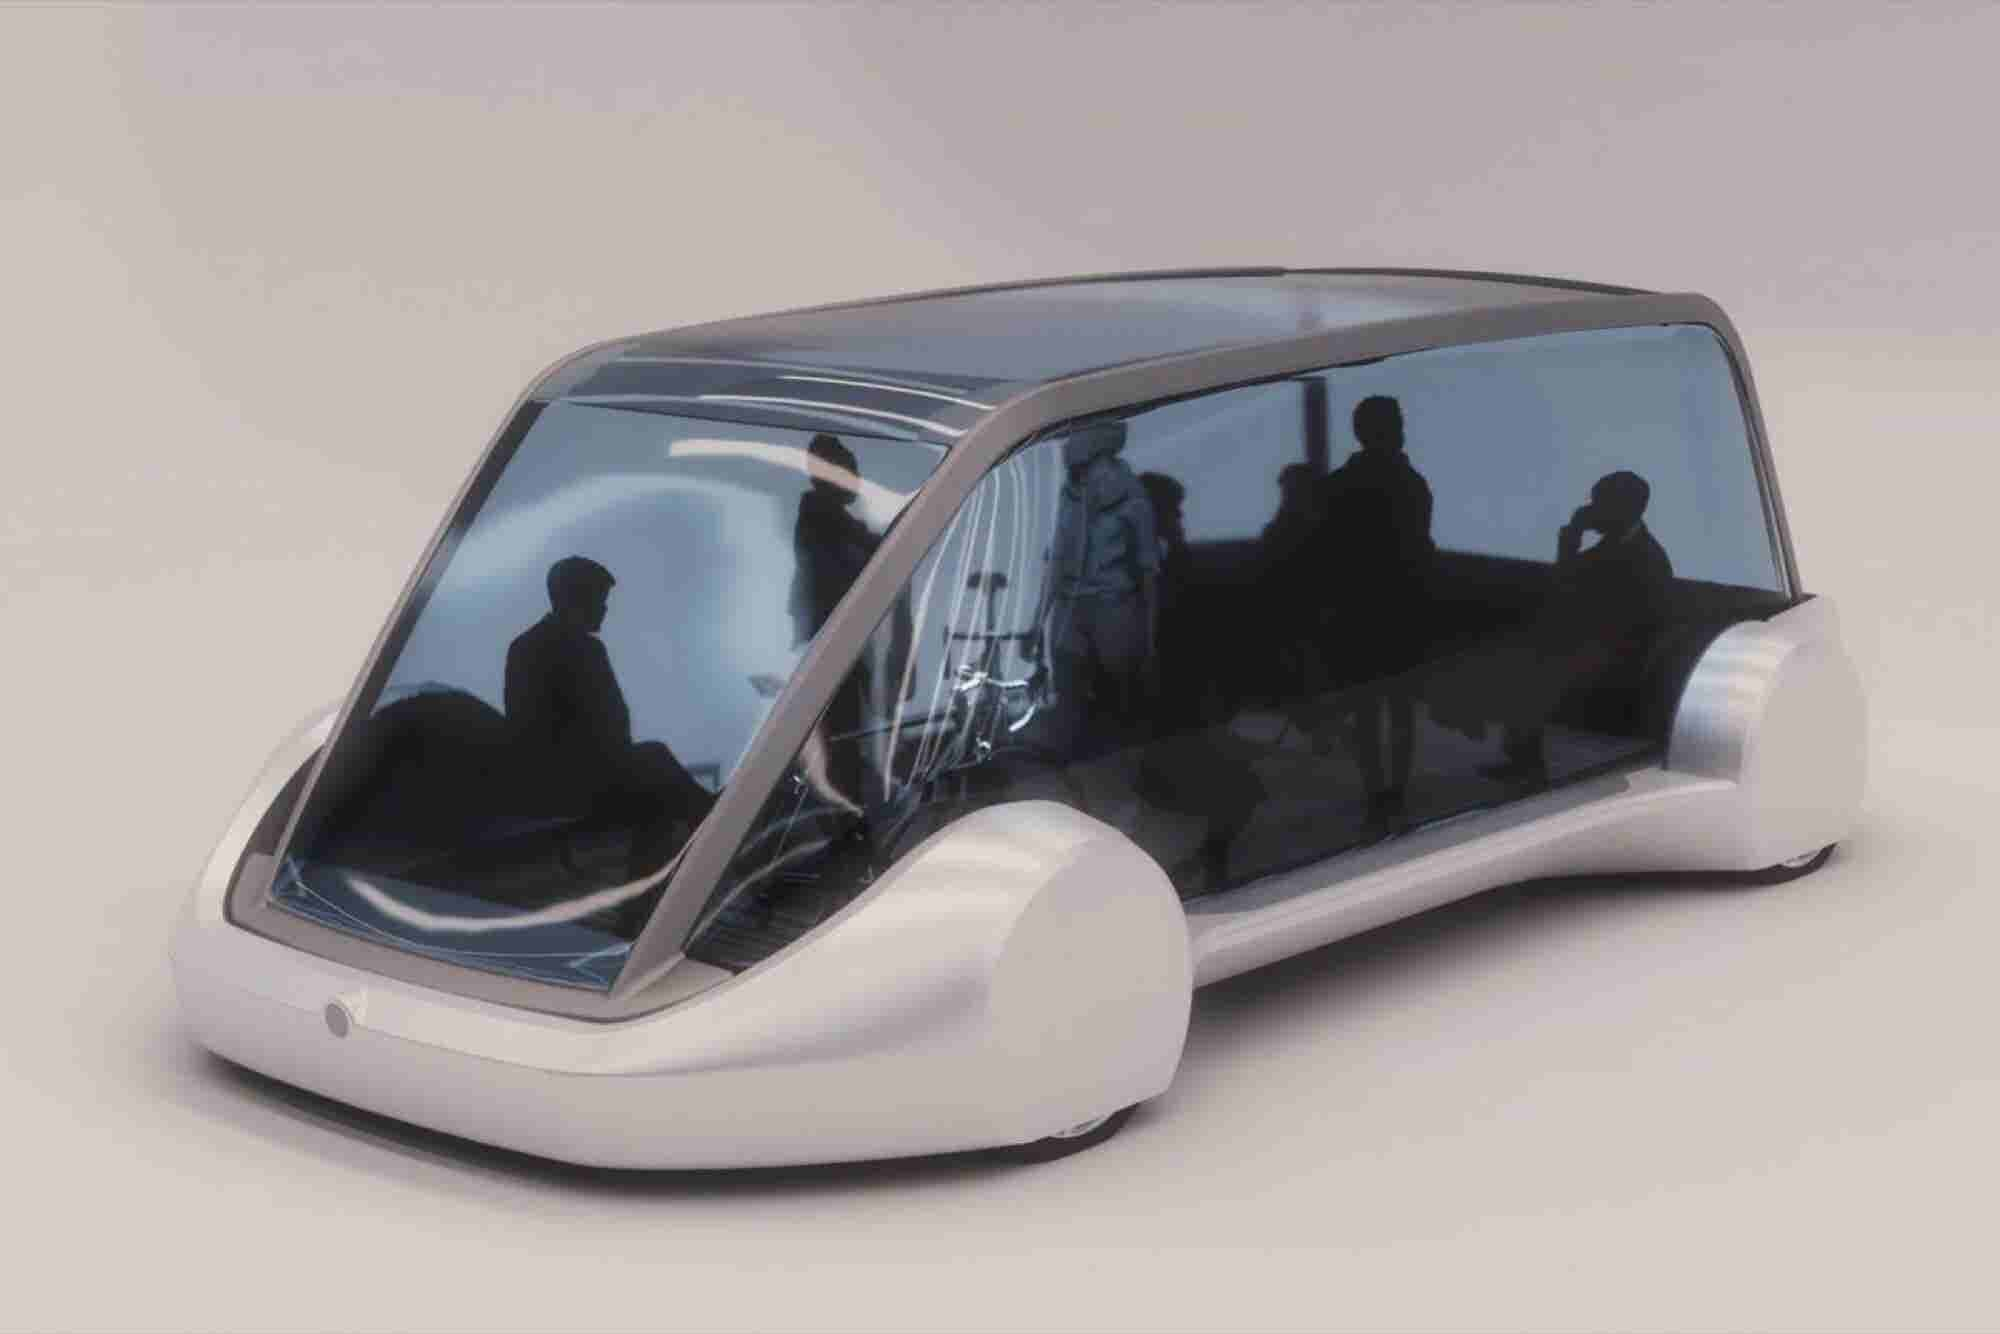 Elon Musk Gets Verbal 'Approval' for NY to D.C. Hyperloop